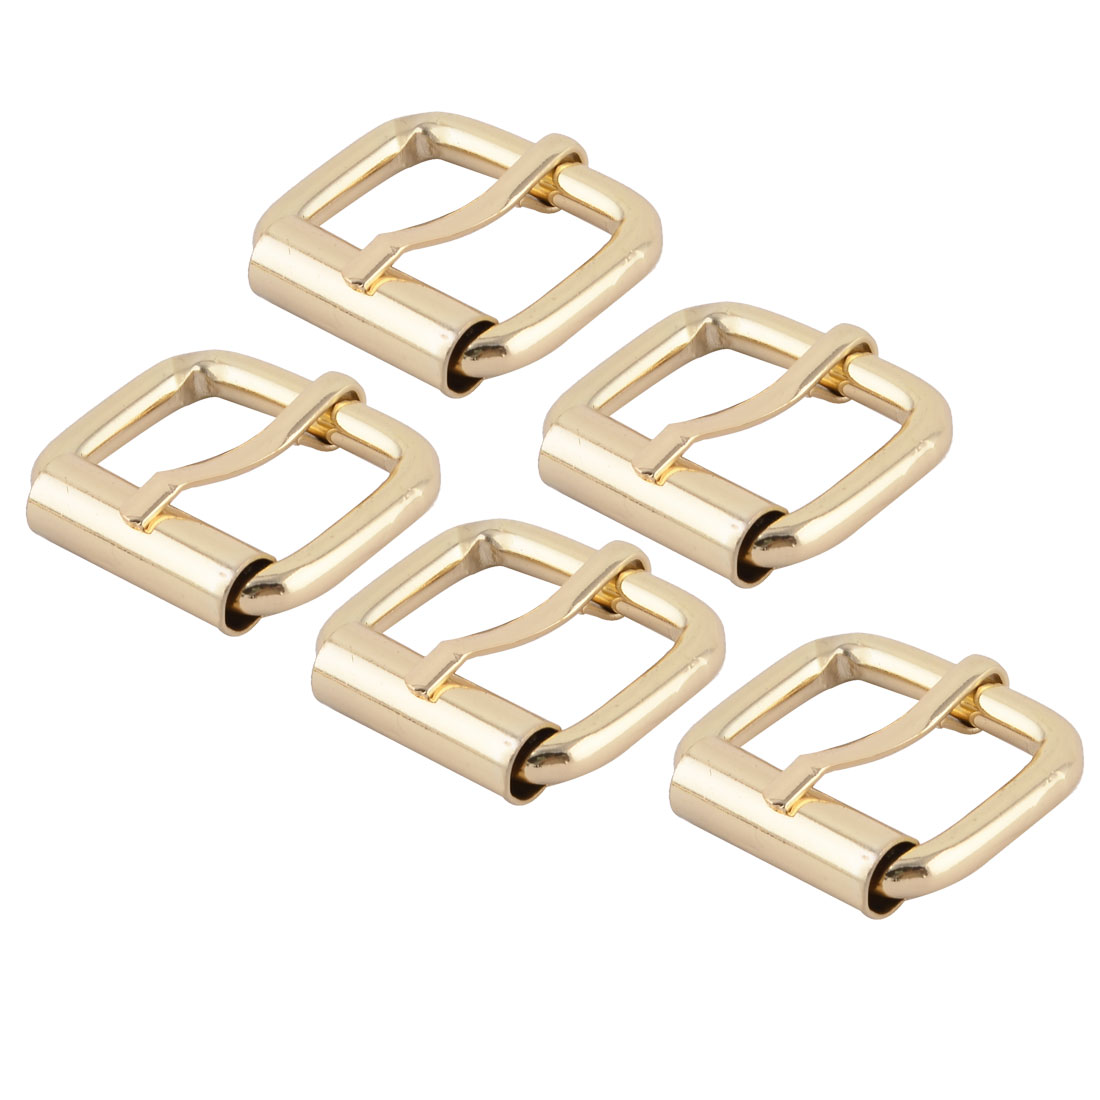 "Handbag Accessory Metal Rectangle Buckle 1"" x 0.7"" Inside Size Gold Tone 5 Pcs"